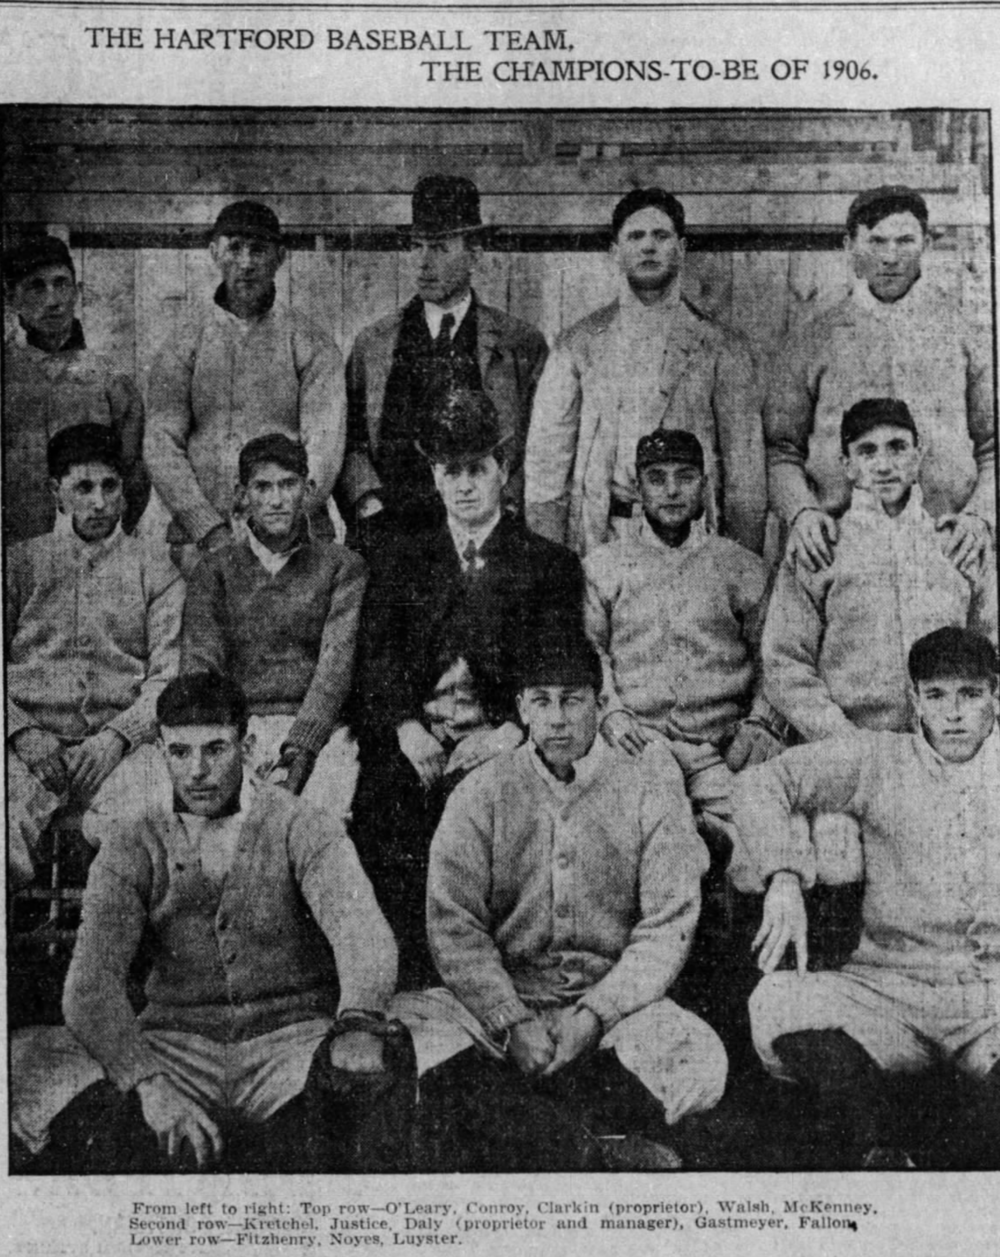 1906The Hartford Senators Baseball Team Champions of the Eastern League - James H. Clarkin, (middle, back) was the owner of the Senators from 1904 to 1916.